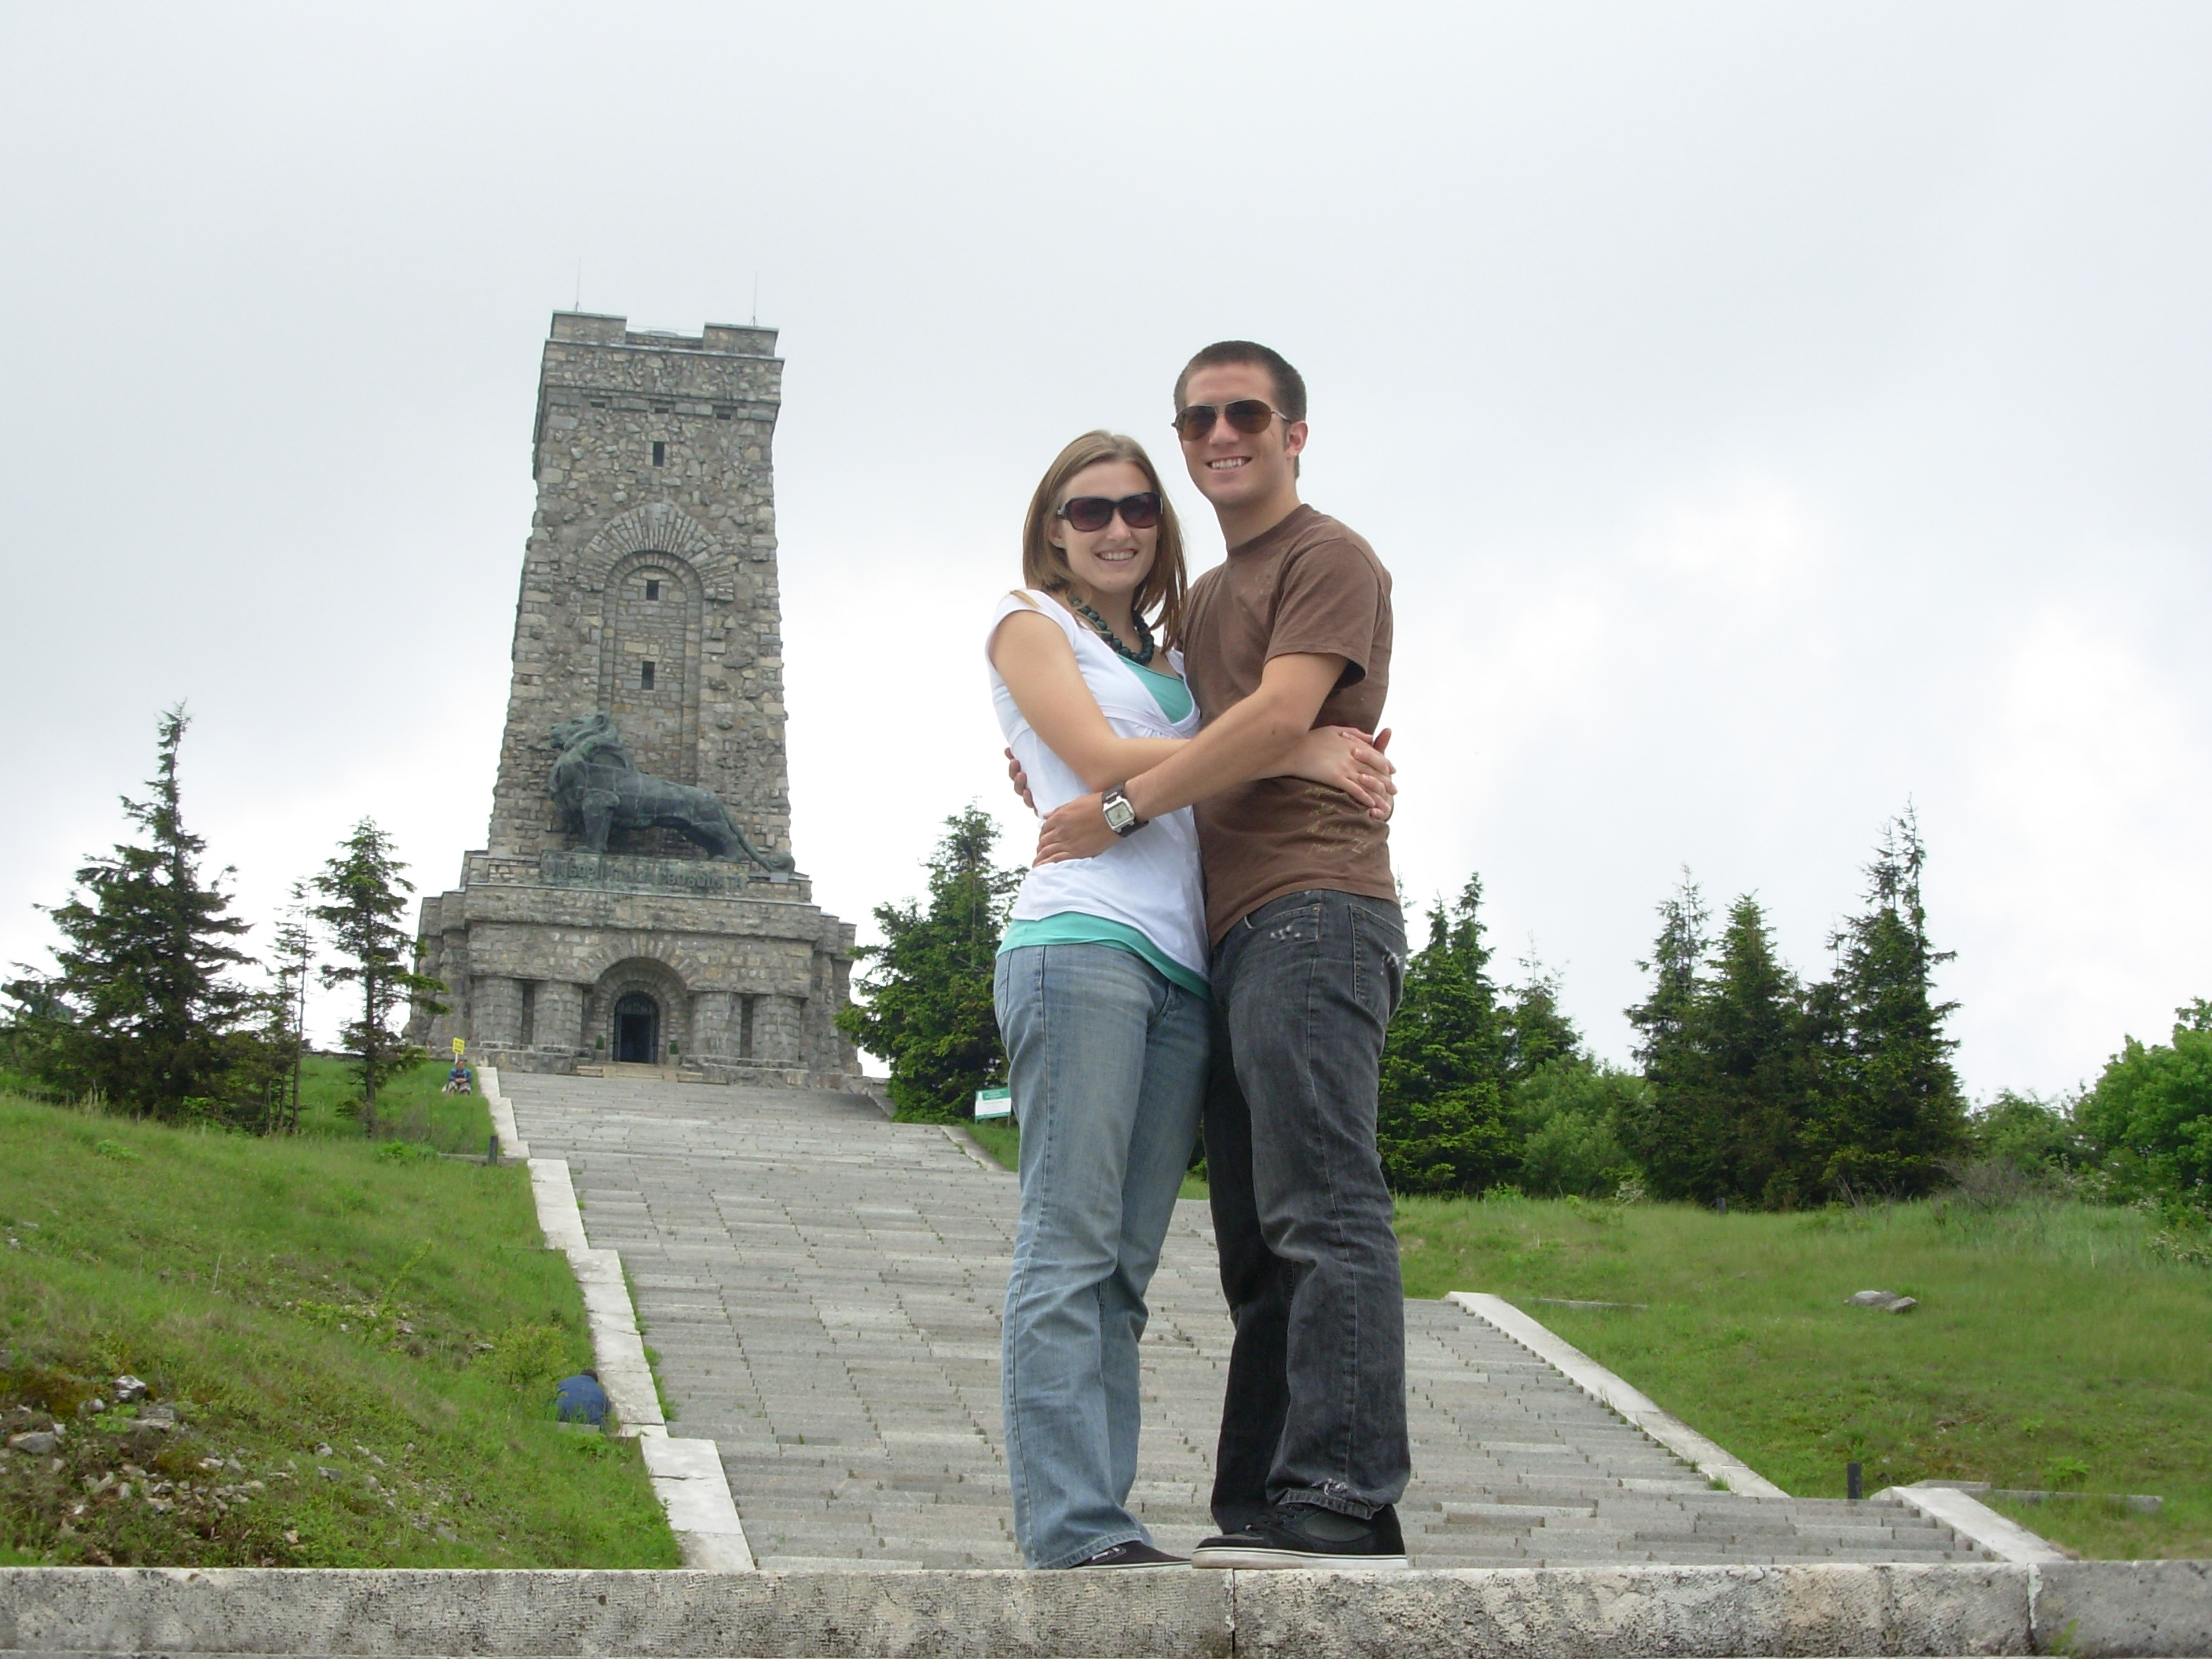 First time at Shipka together